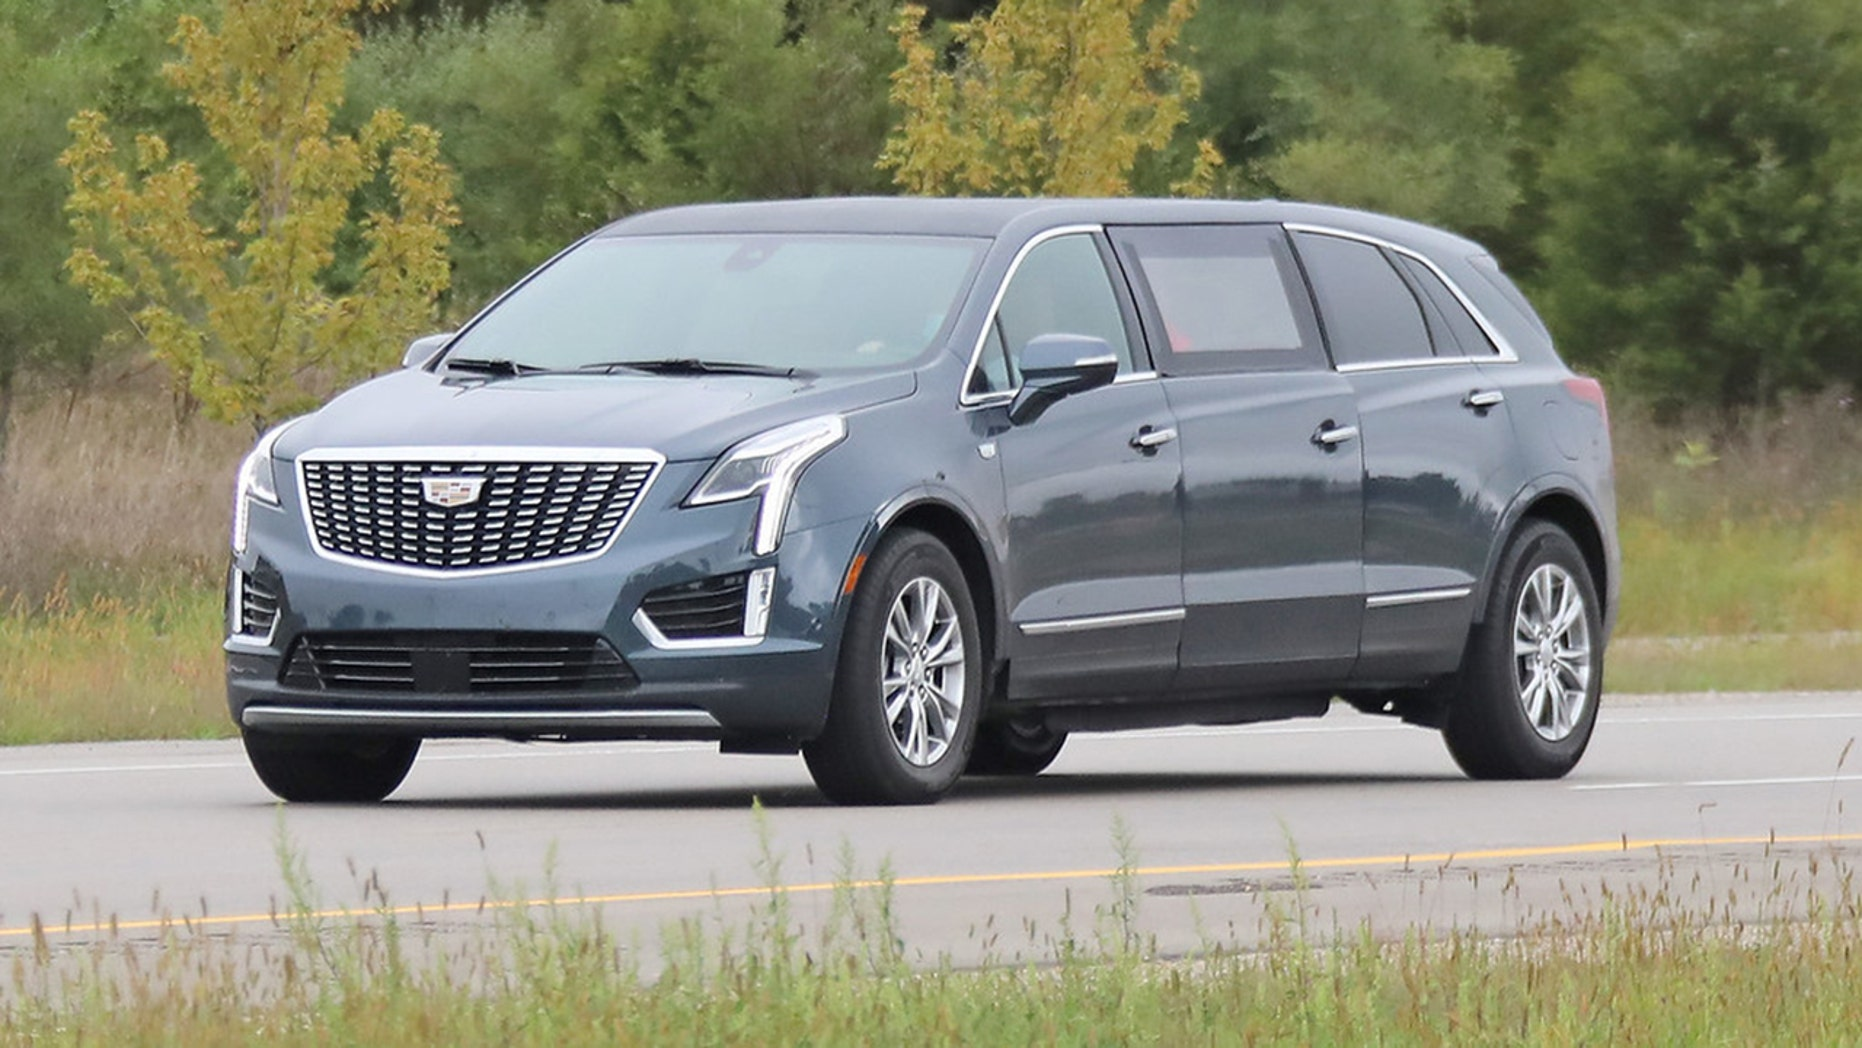 next cadillac xt5 limousine caught on cameraauto paparazzo